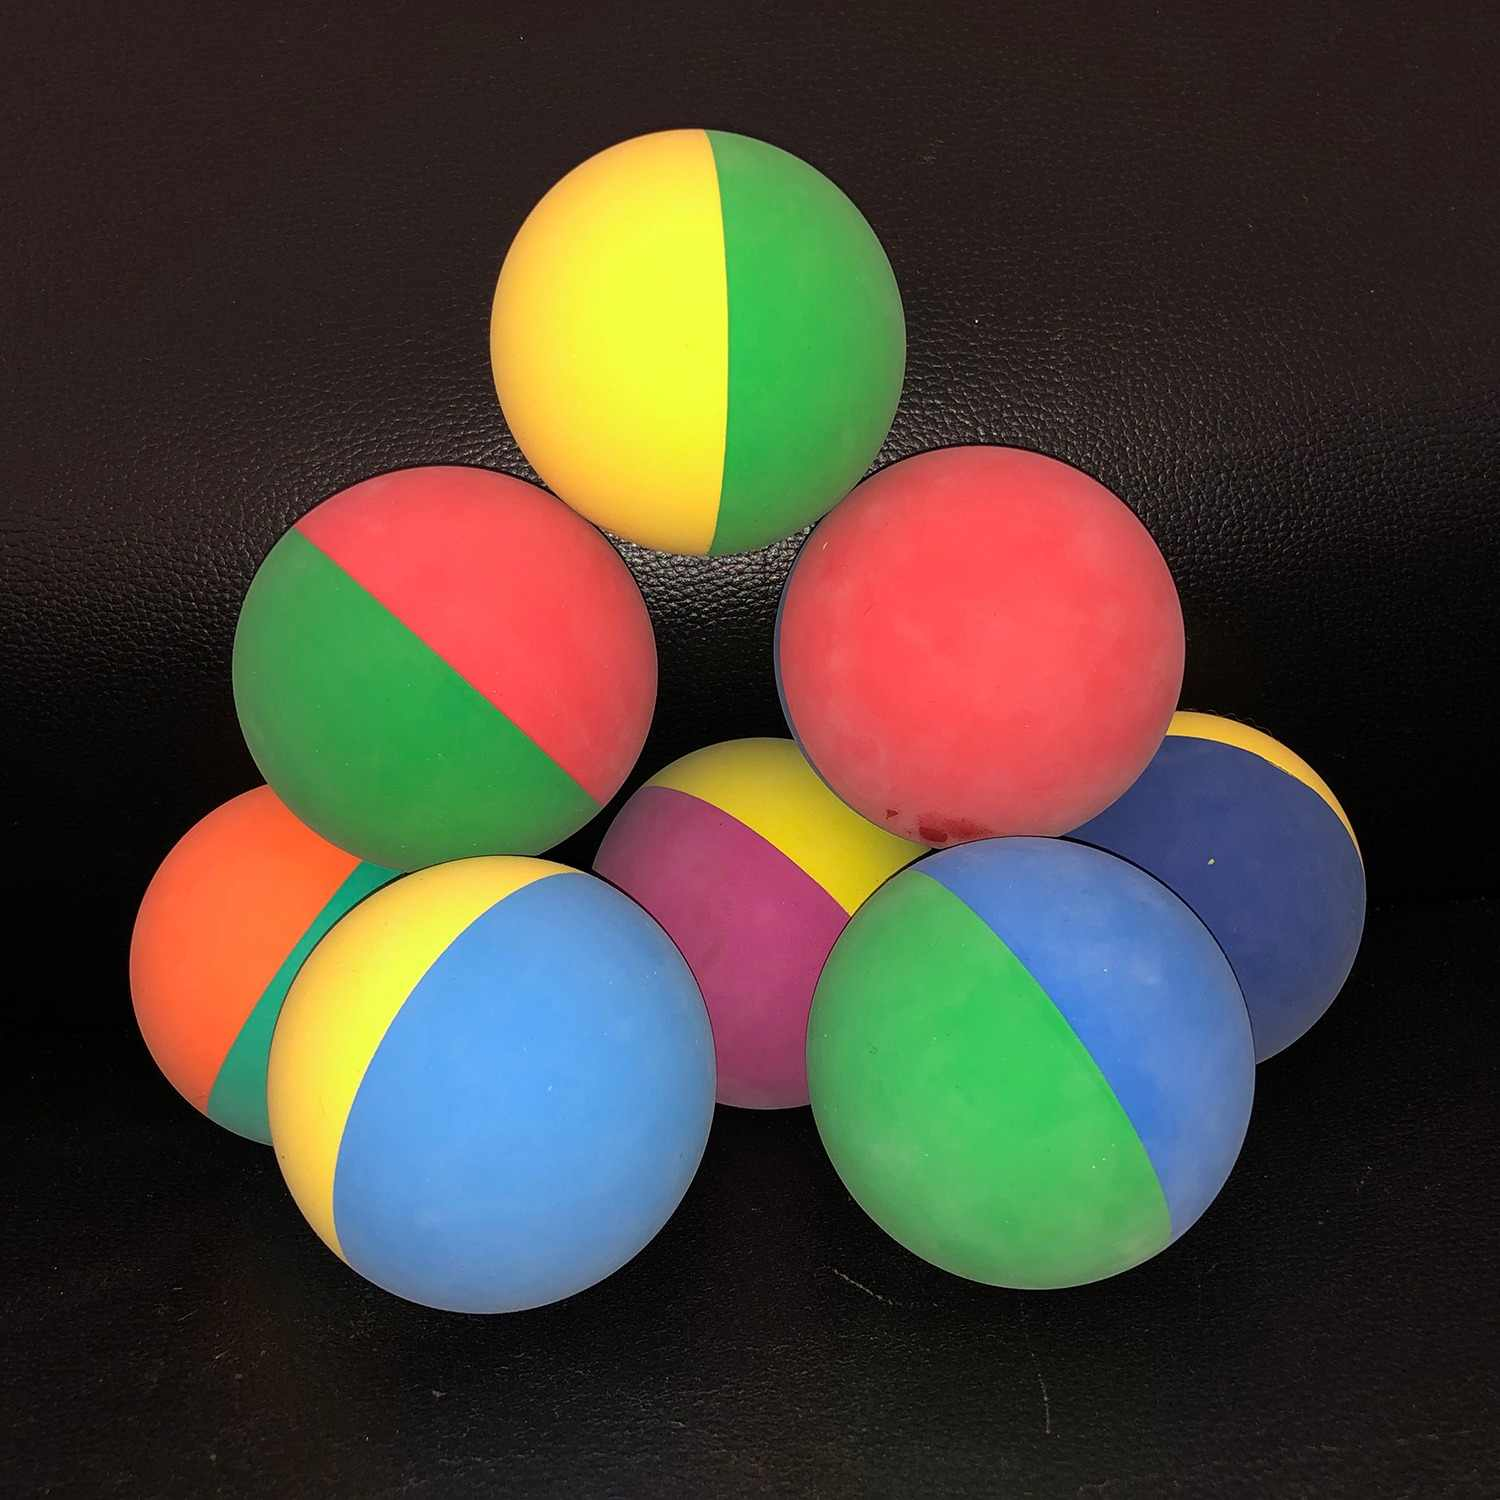 10pcs/lot 6cm Bi-color Racquet ball Squash Low Speed Rubber Hollow Ball Training Competition Thickness 5mm High Elasticity